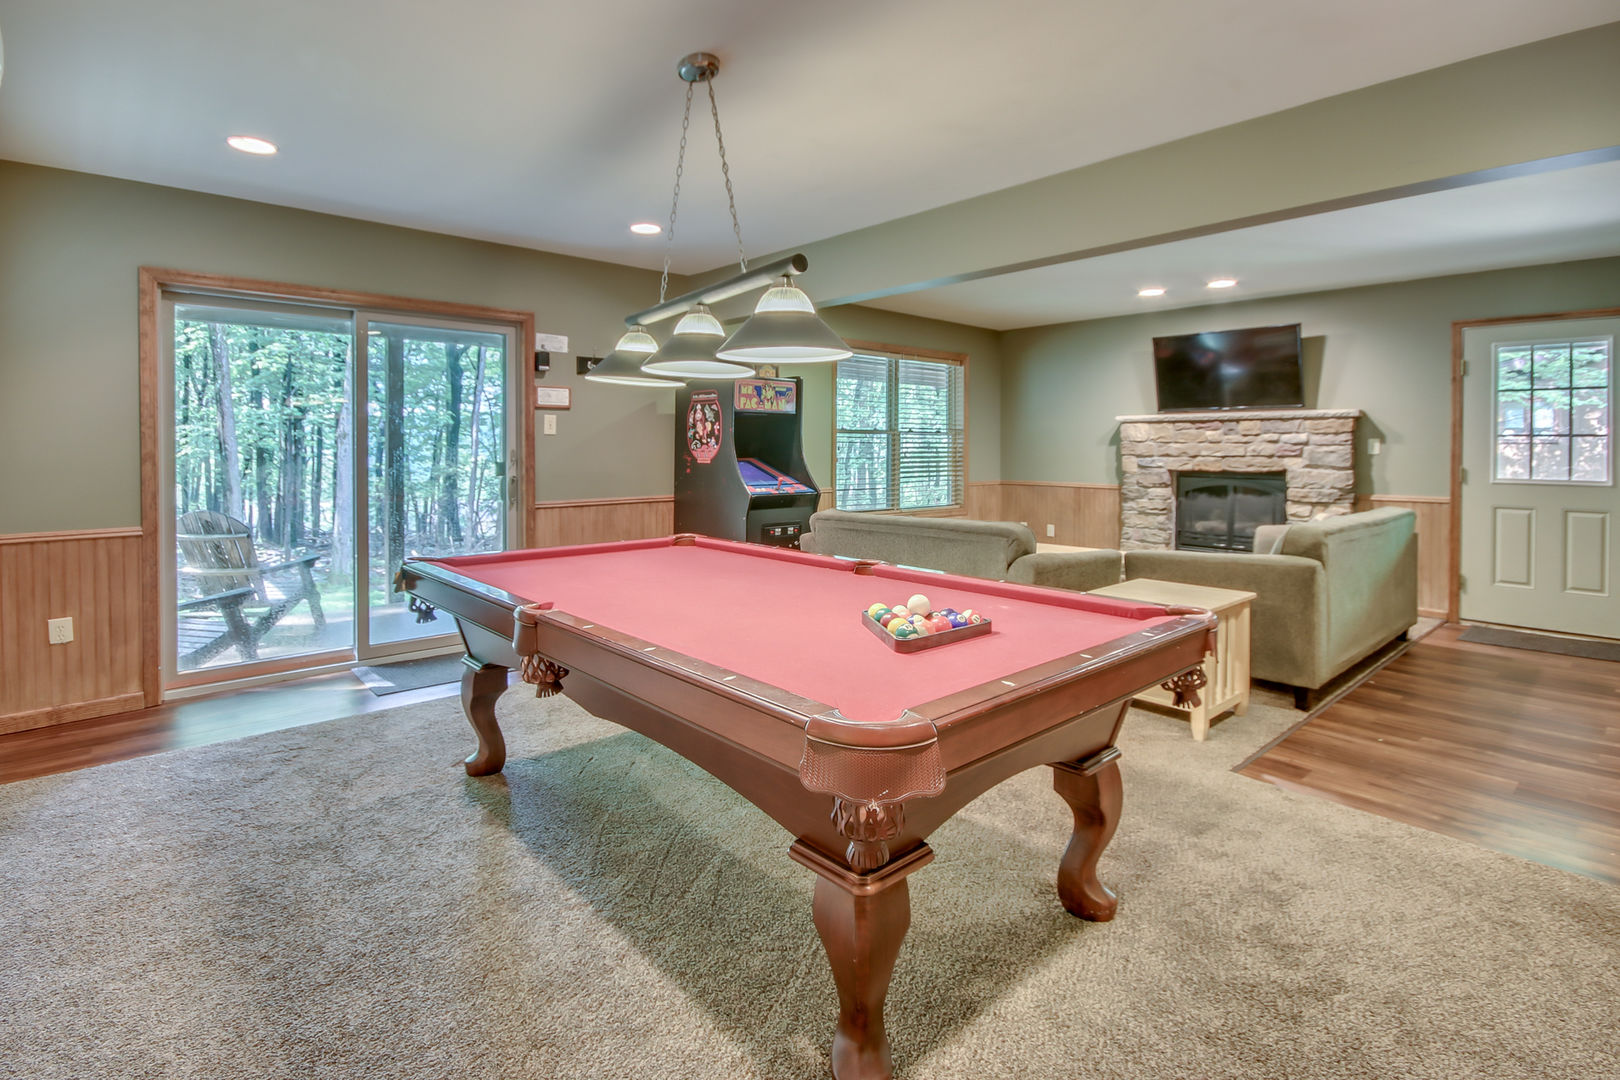 Spacious Game with a Pool Table, Arcade Game, and Large Sofa.